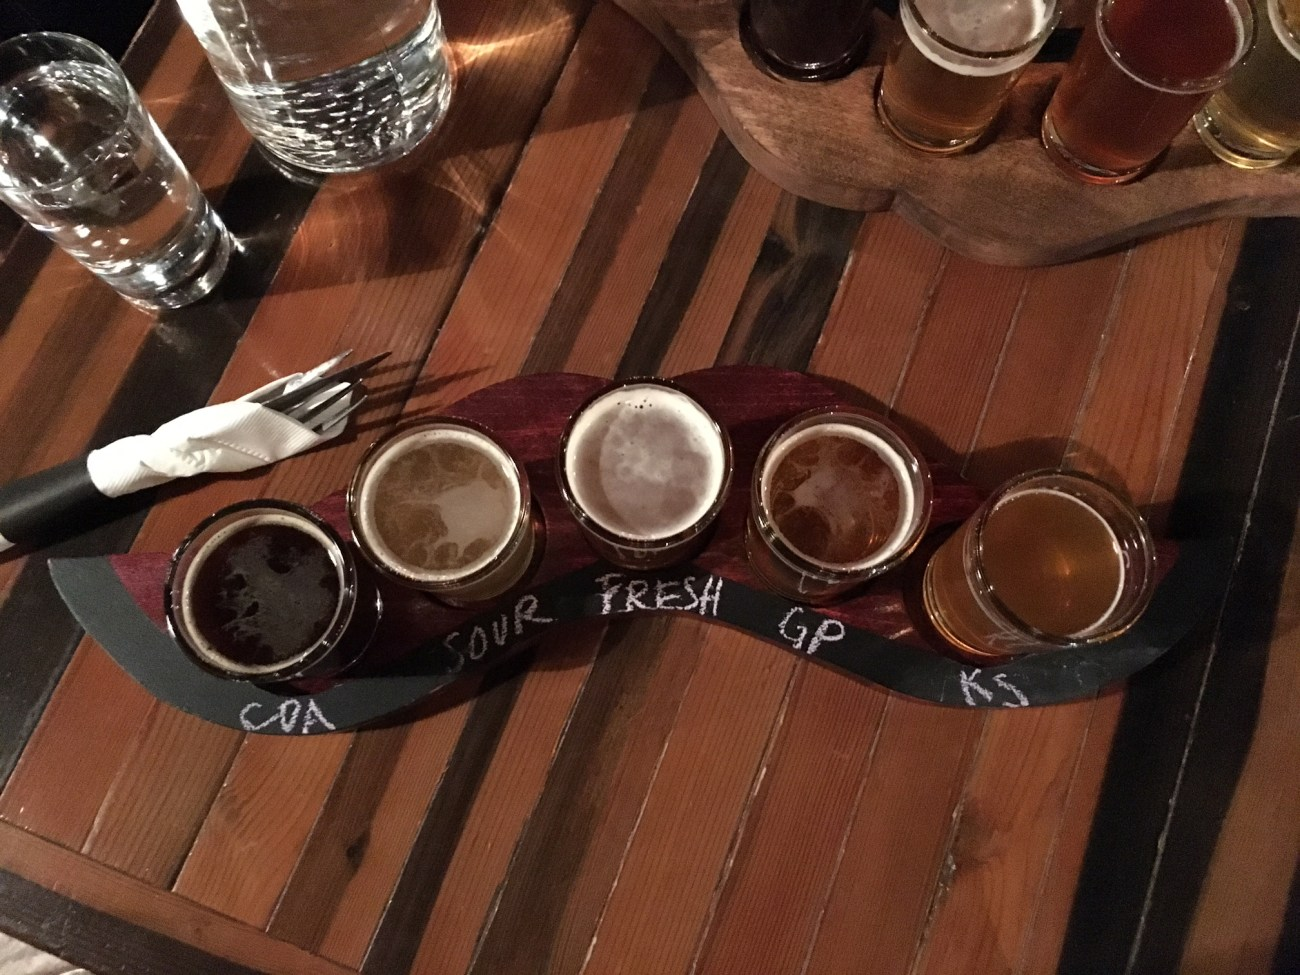 Flight of gluten-free beers at Ghostfish taproom in Seattle // Our Next Life